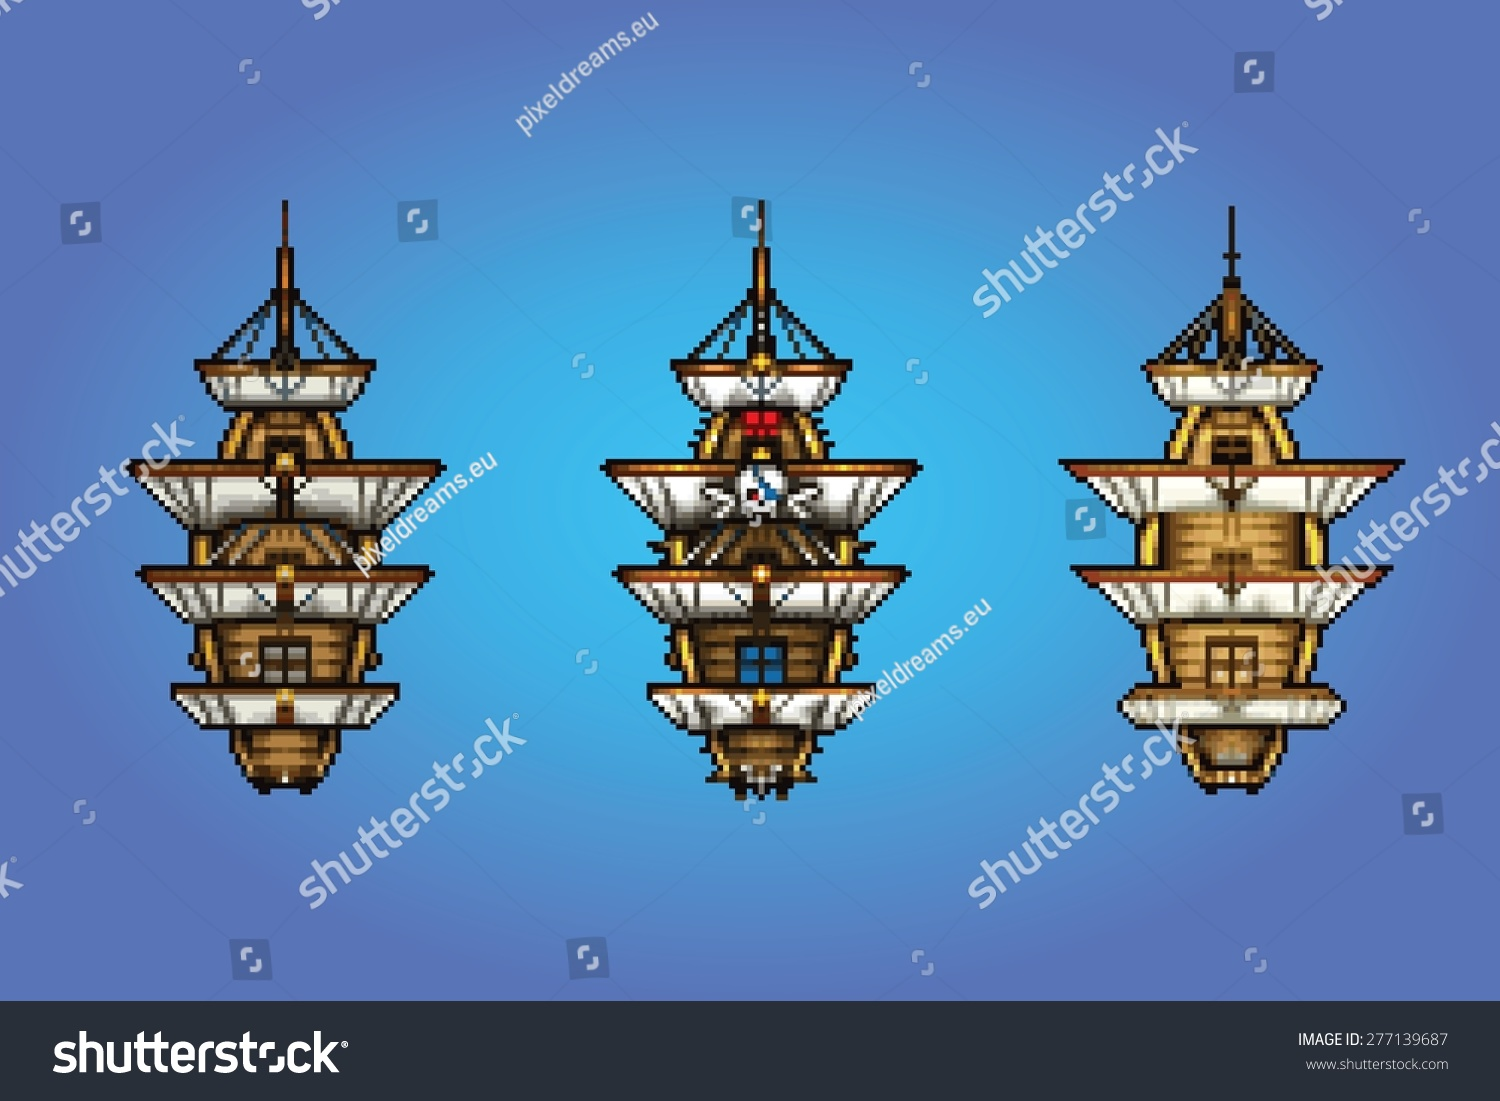 royalty free pixel art style pirate ship collection u2026 277139687